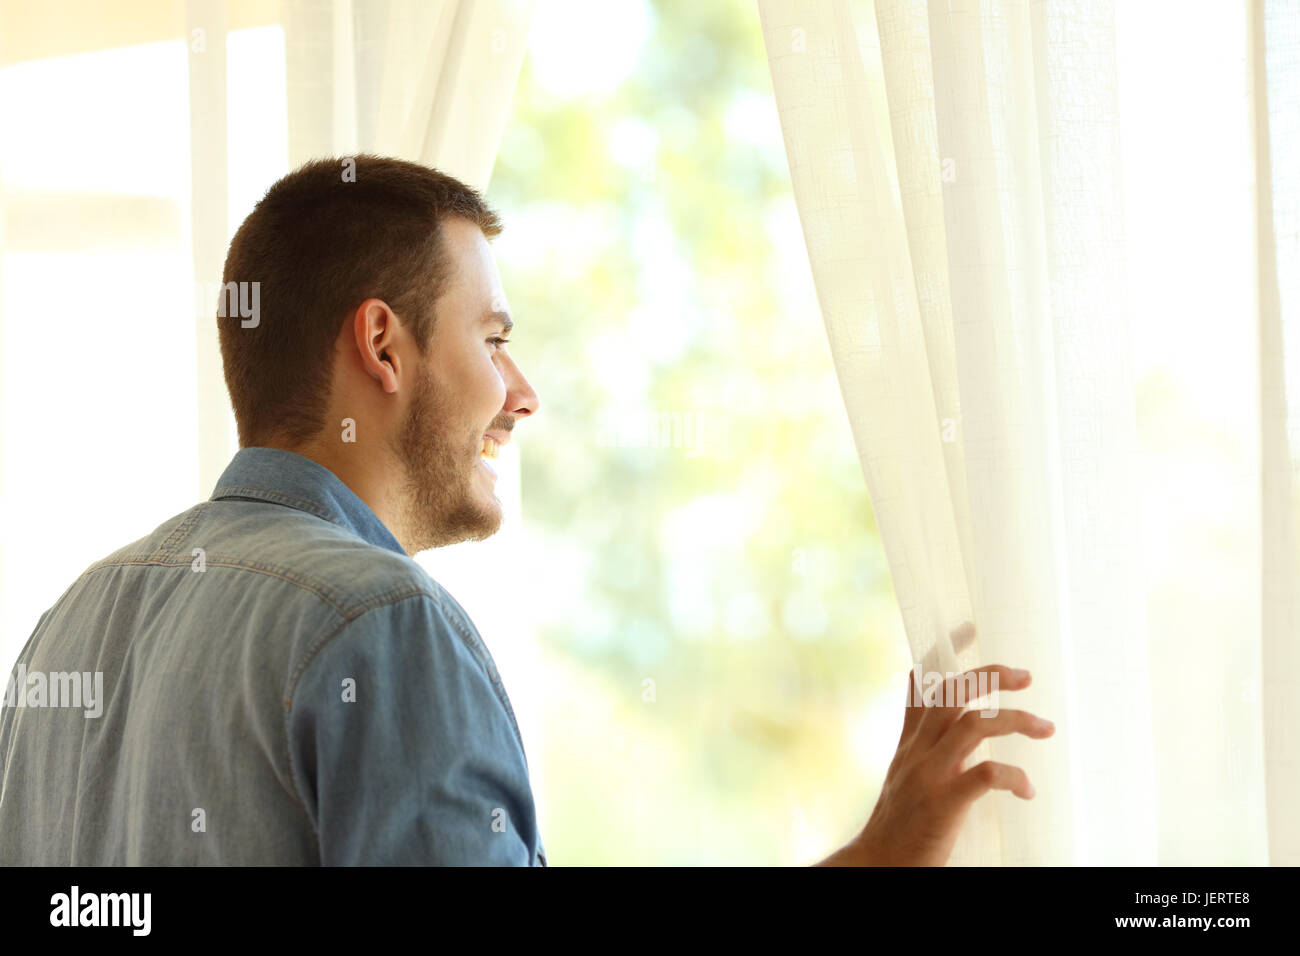 Single pensive man looking outdoors through a window at home or hotel - Stock Image